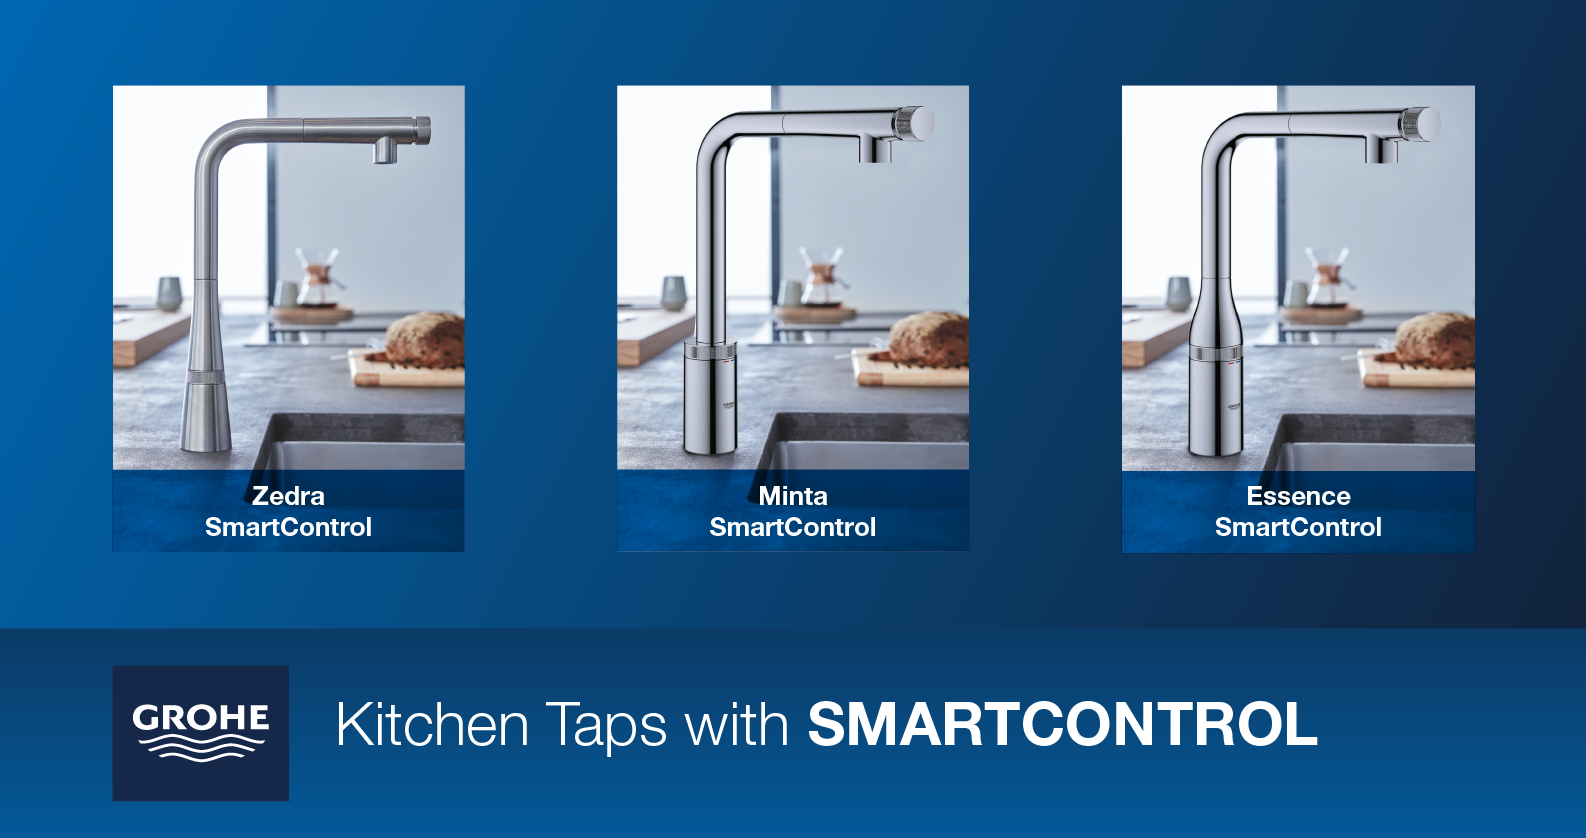 GROHE Kitchen Taps with SmartControl